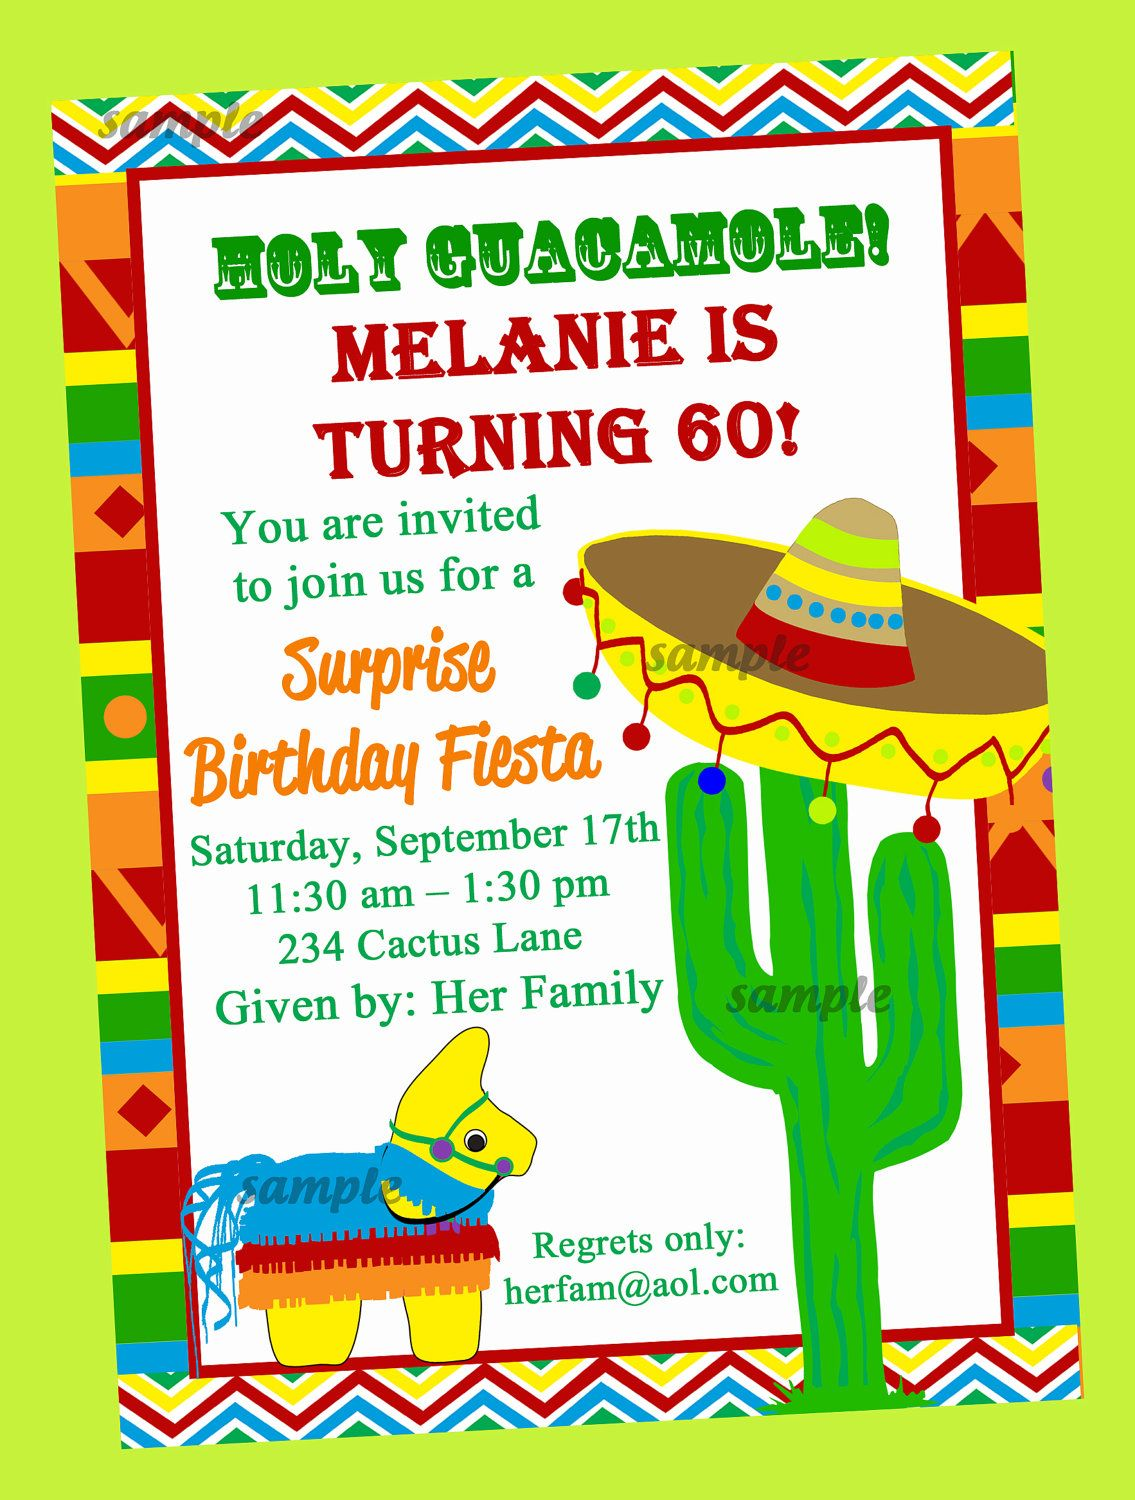 fiesta party invitation printable or printed with free shipping, invitation samples